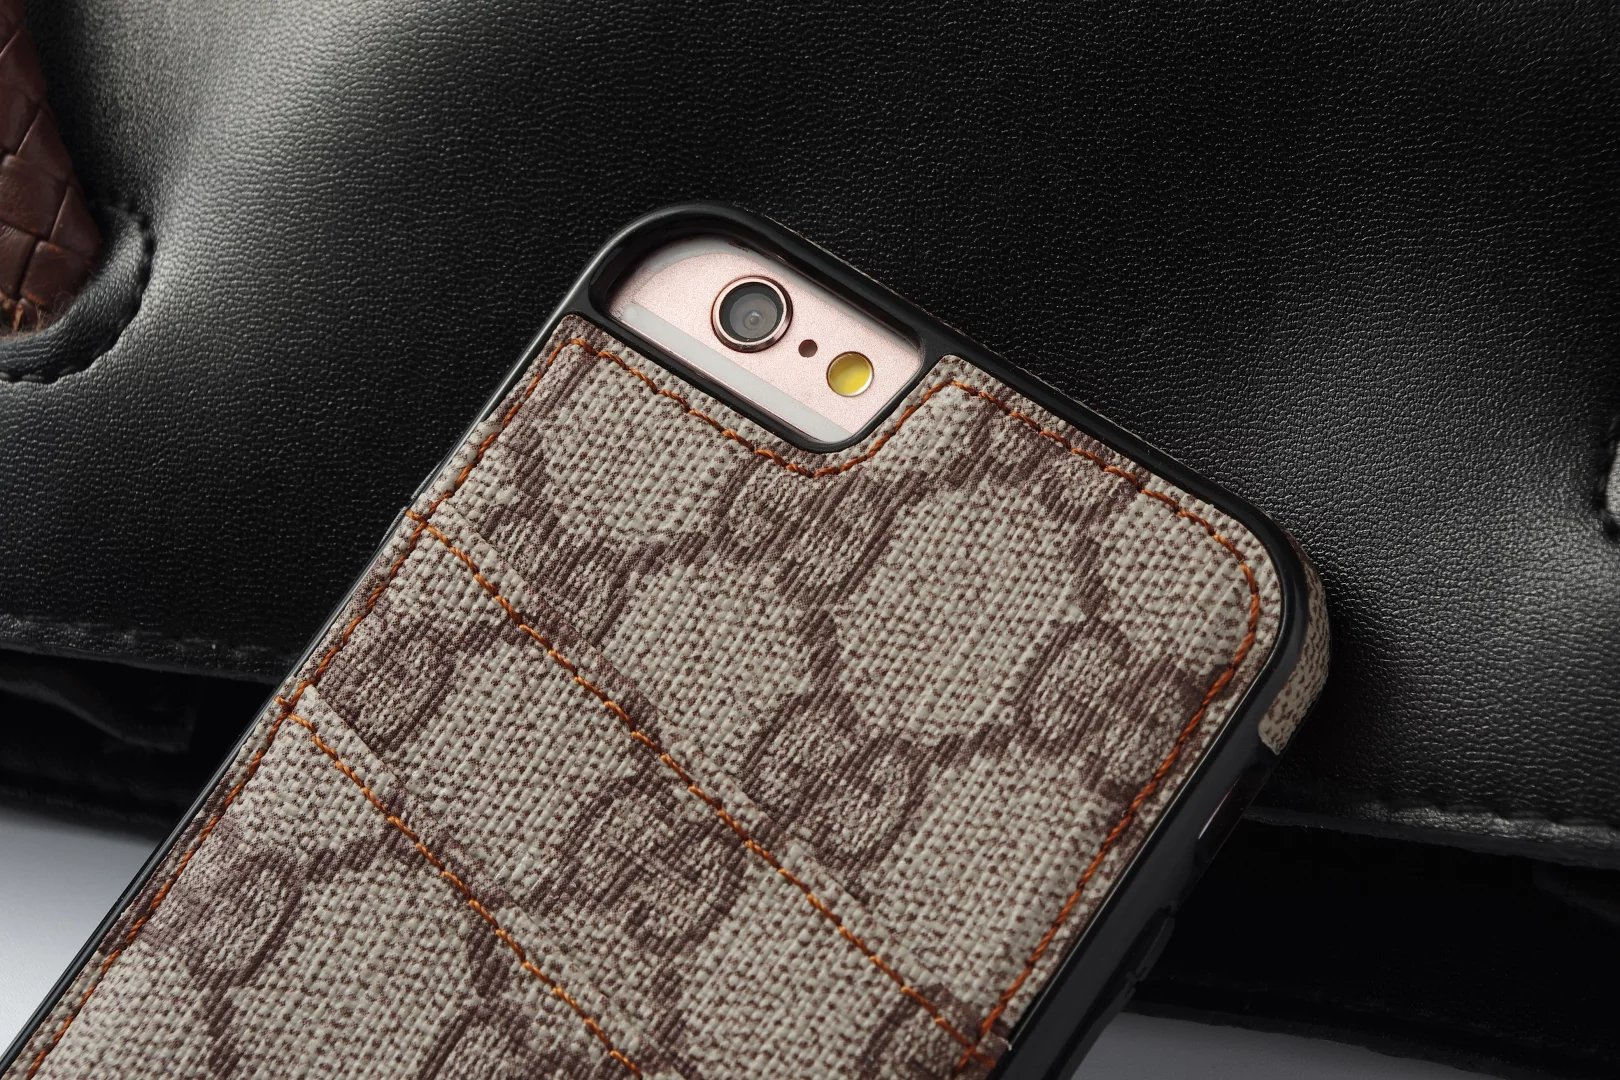 iphone 8 nice cases iphone 8 cases fashion Gucci iphone 8 case create an iphone 8 case cool cell phone cases design ipod 6 case all iphone cases x scene cases & covers